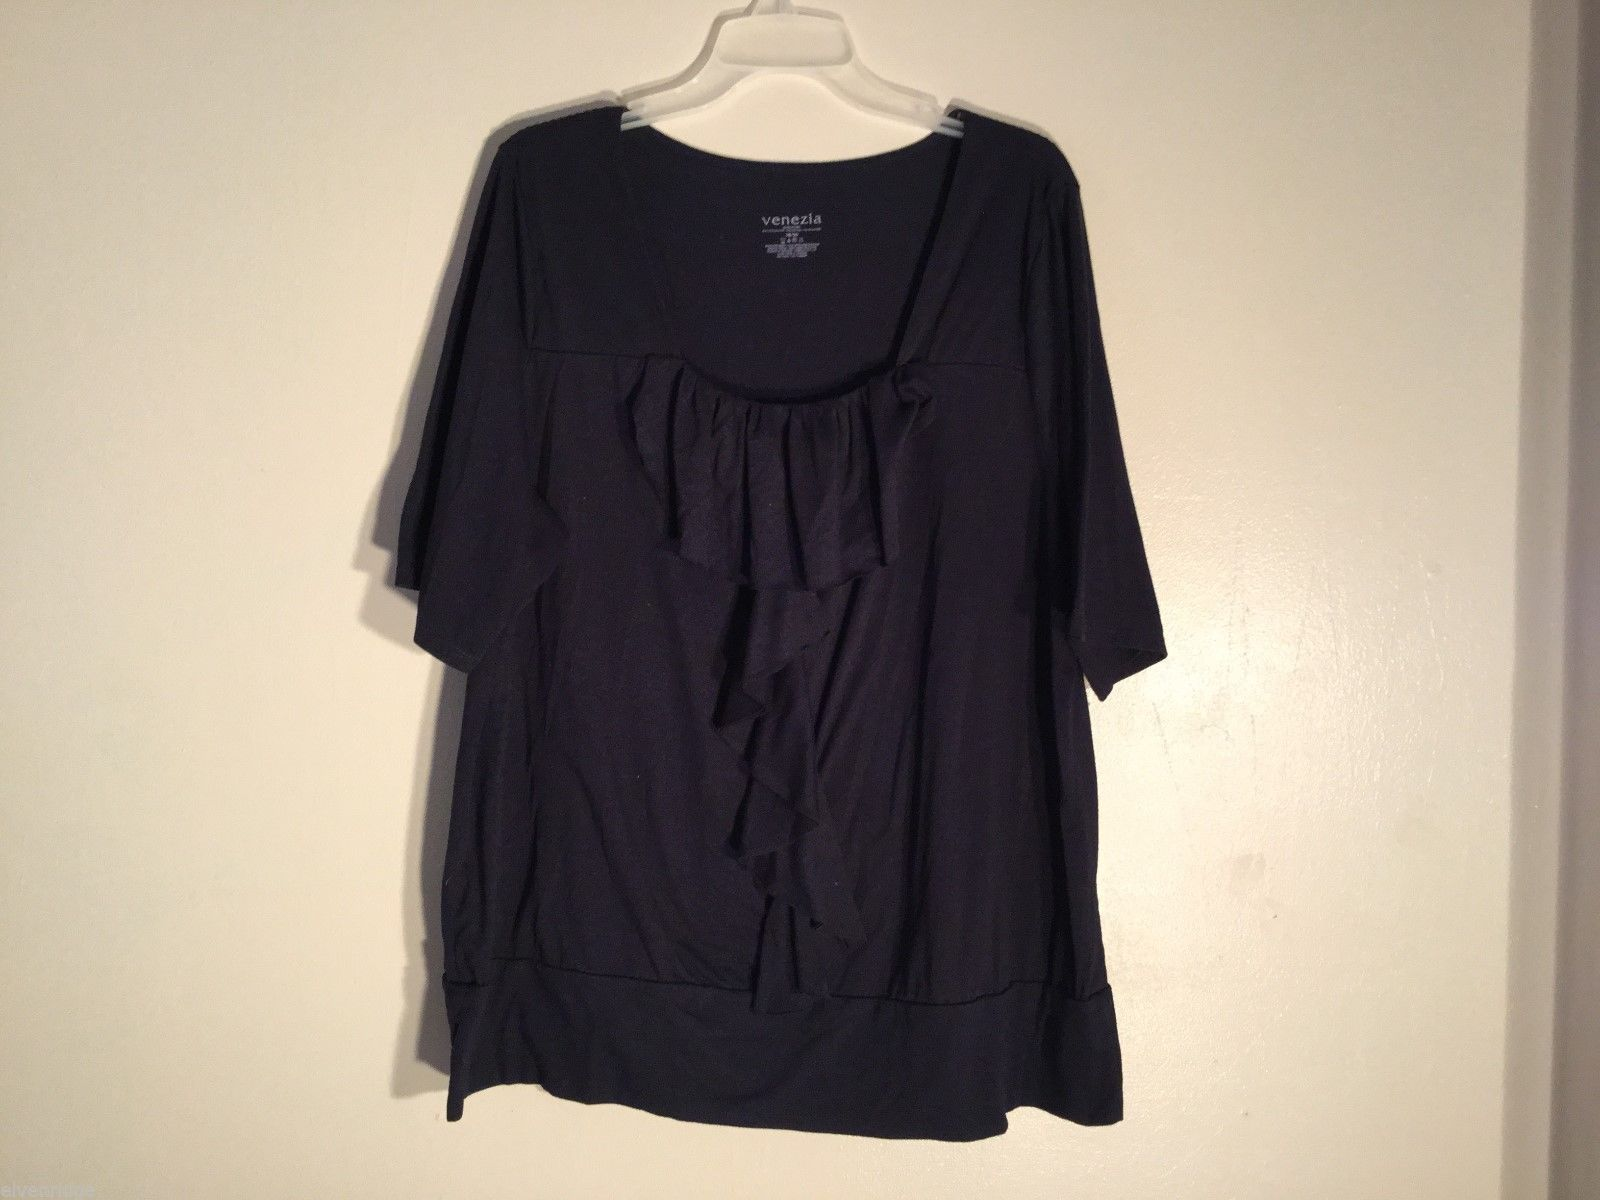 Womens Venezia Black Frilly Blouse, Size 18/20